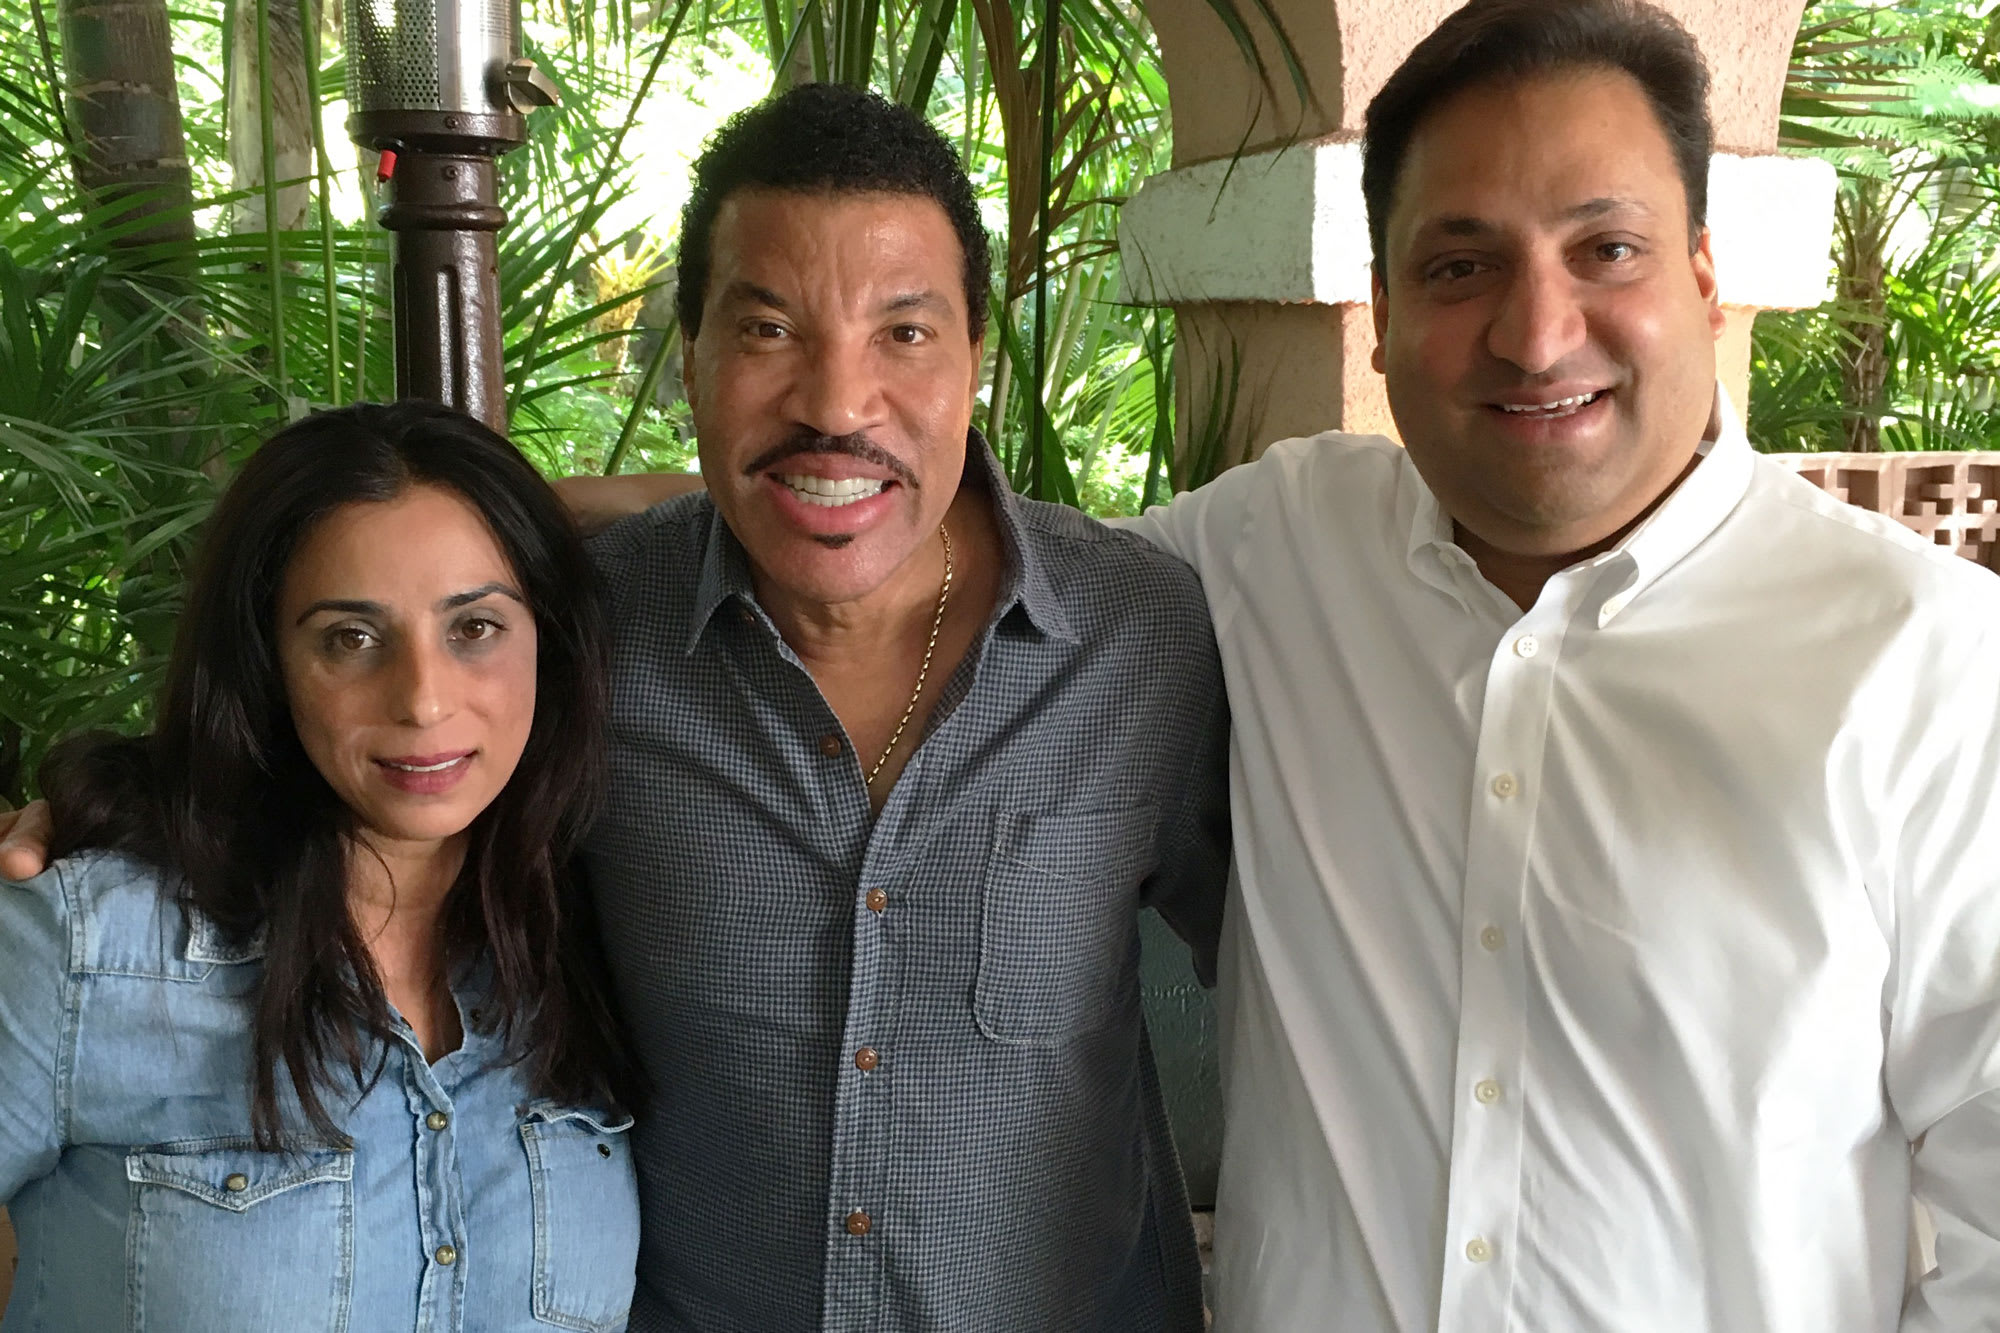 Lionel Richie-Backed In-Home Primary Care Company Heal Launches New 'Health Assurance' Offering